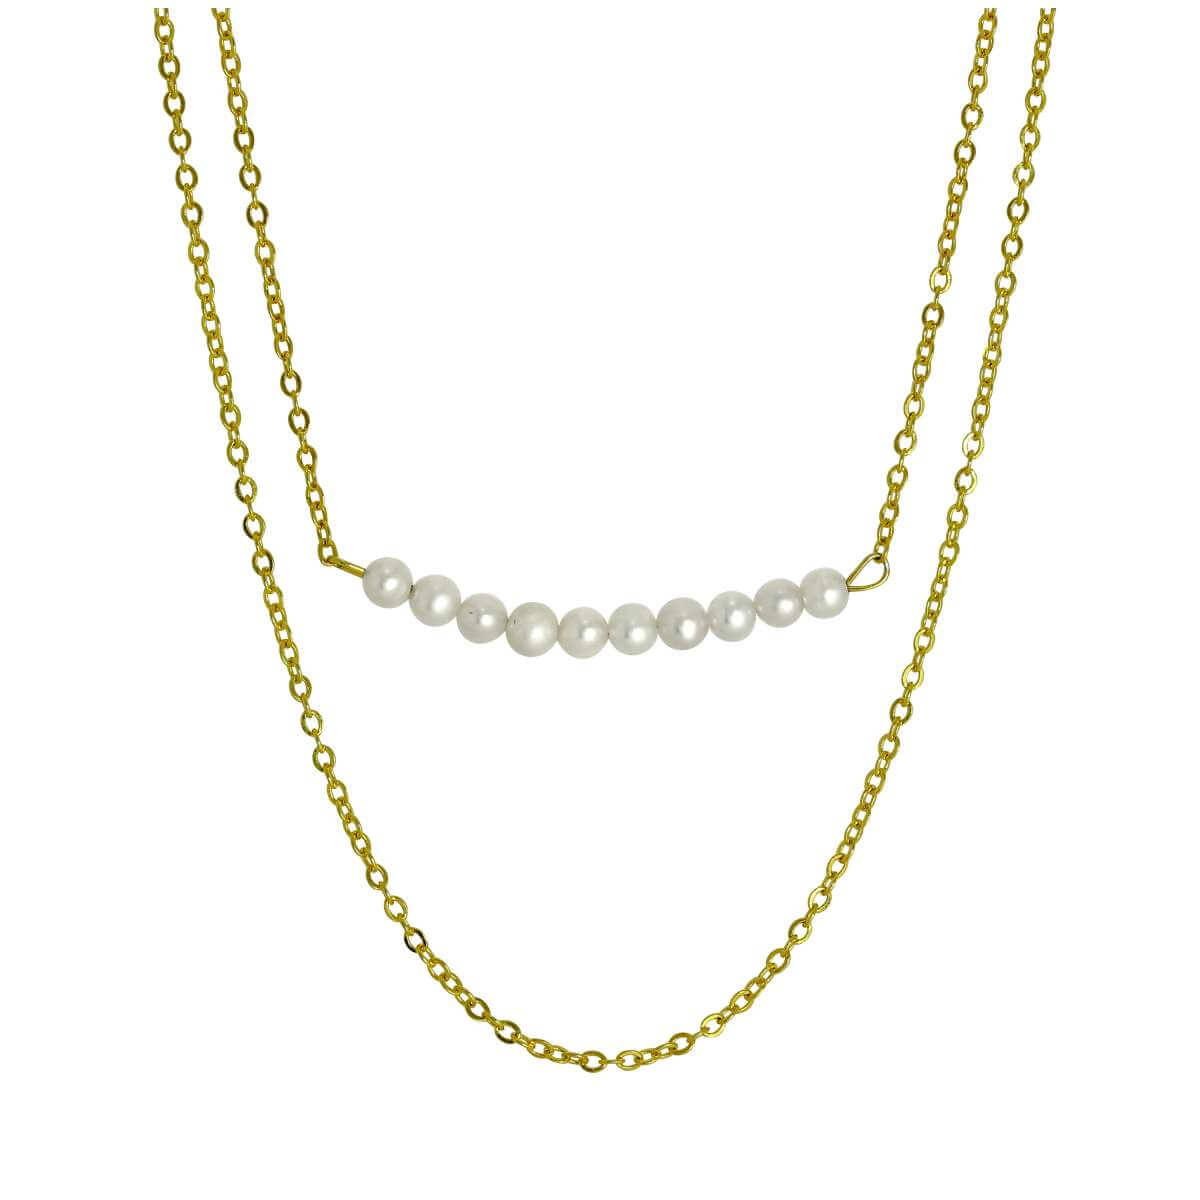 Gold Plated Sterling Silver Double Chain String of Pearls Necklace 15 & 18 Inches